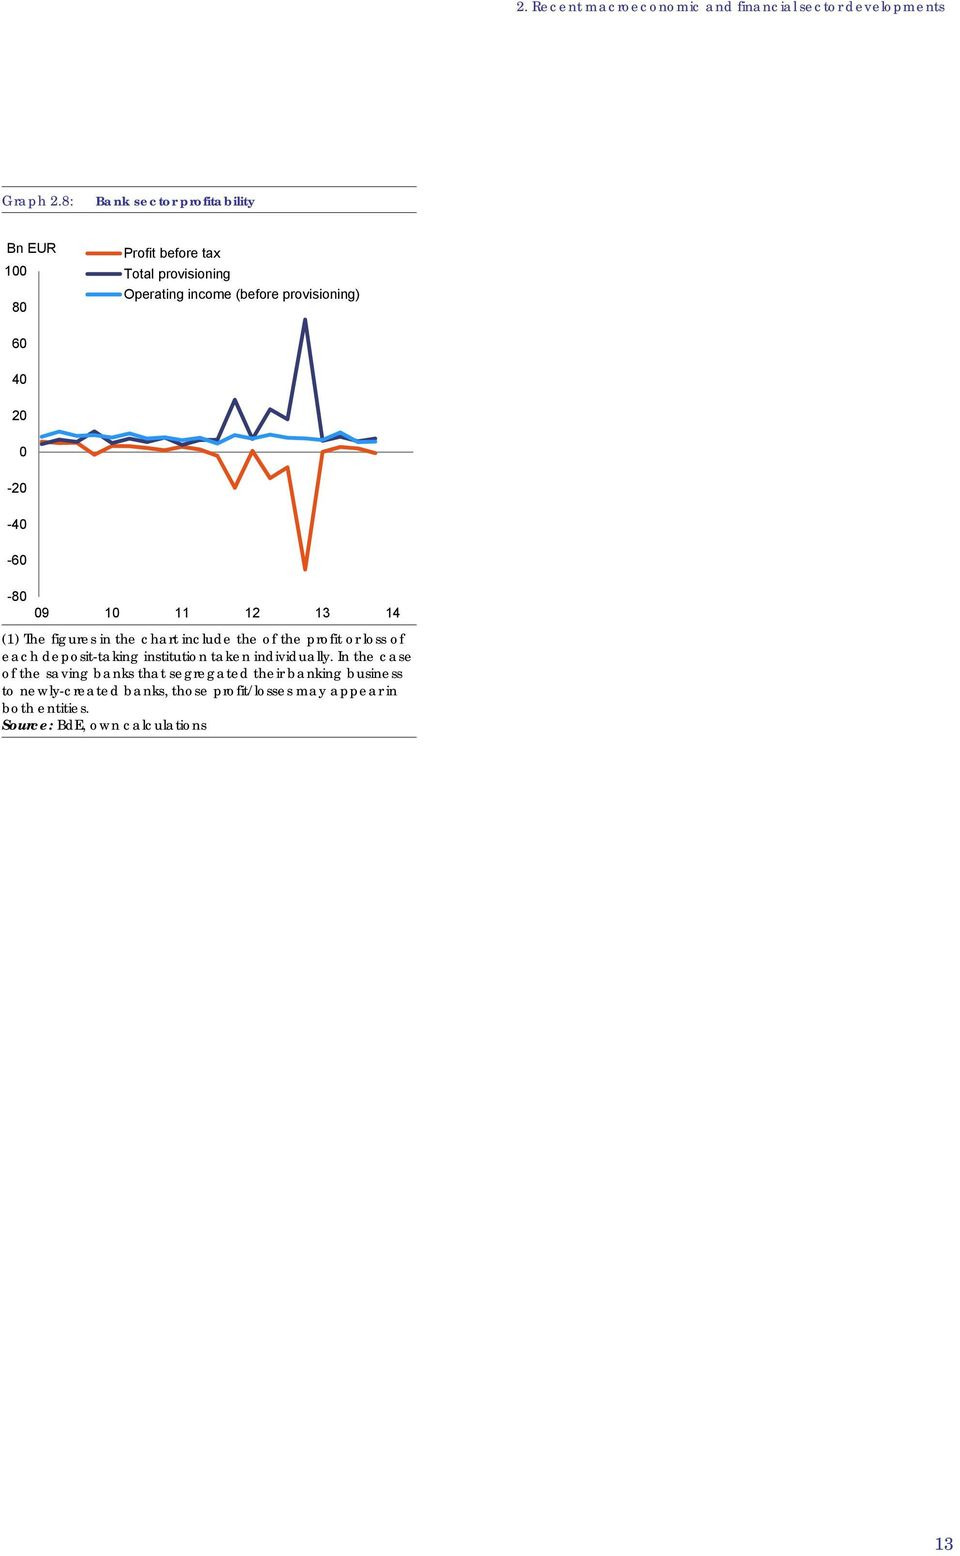 0-20 -40-60 -80 09 10 11 12 13 14 (1) The figures in the chart include the of the profit or loss of each deposit-taking